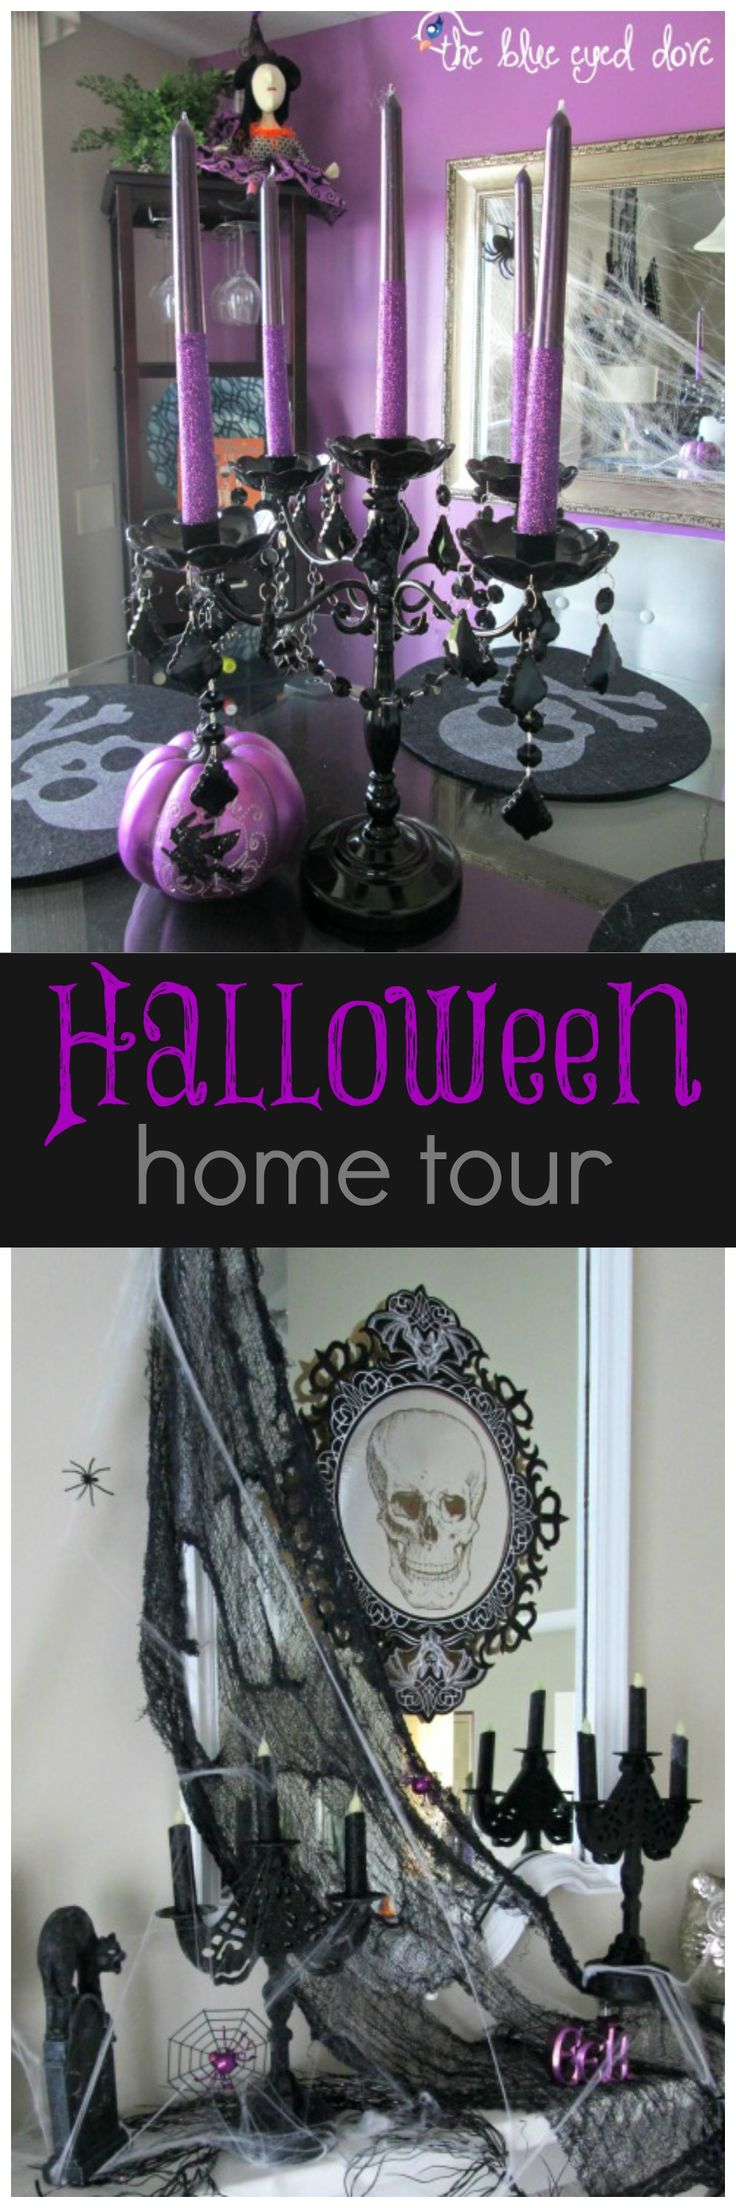 Halloween Home Tour - full of glitz, glam and a few things spooky! theblueeyeddove.com